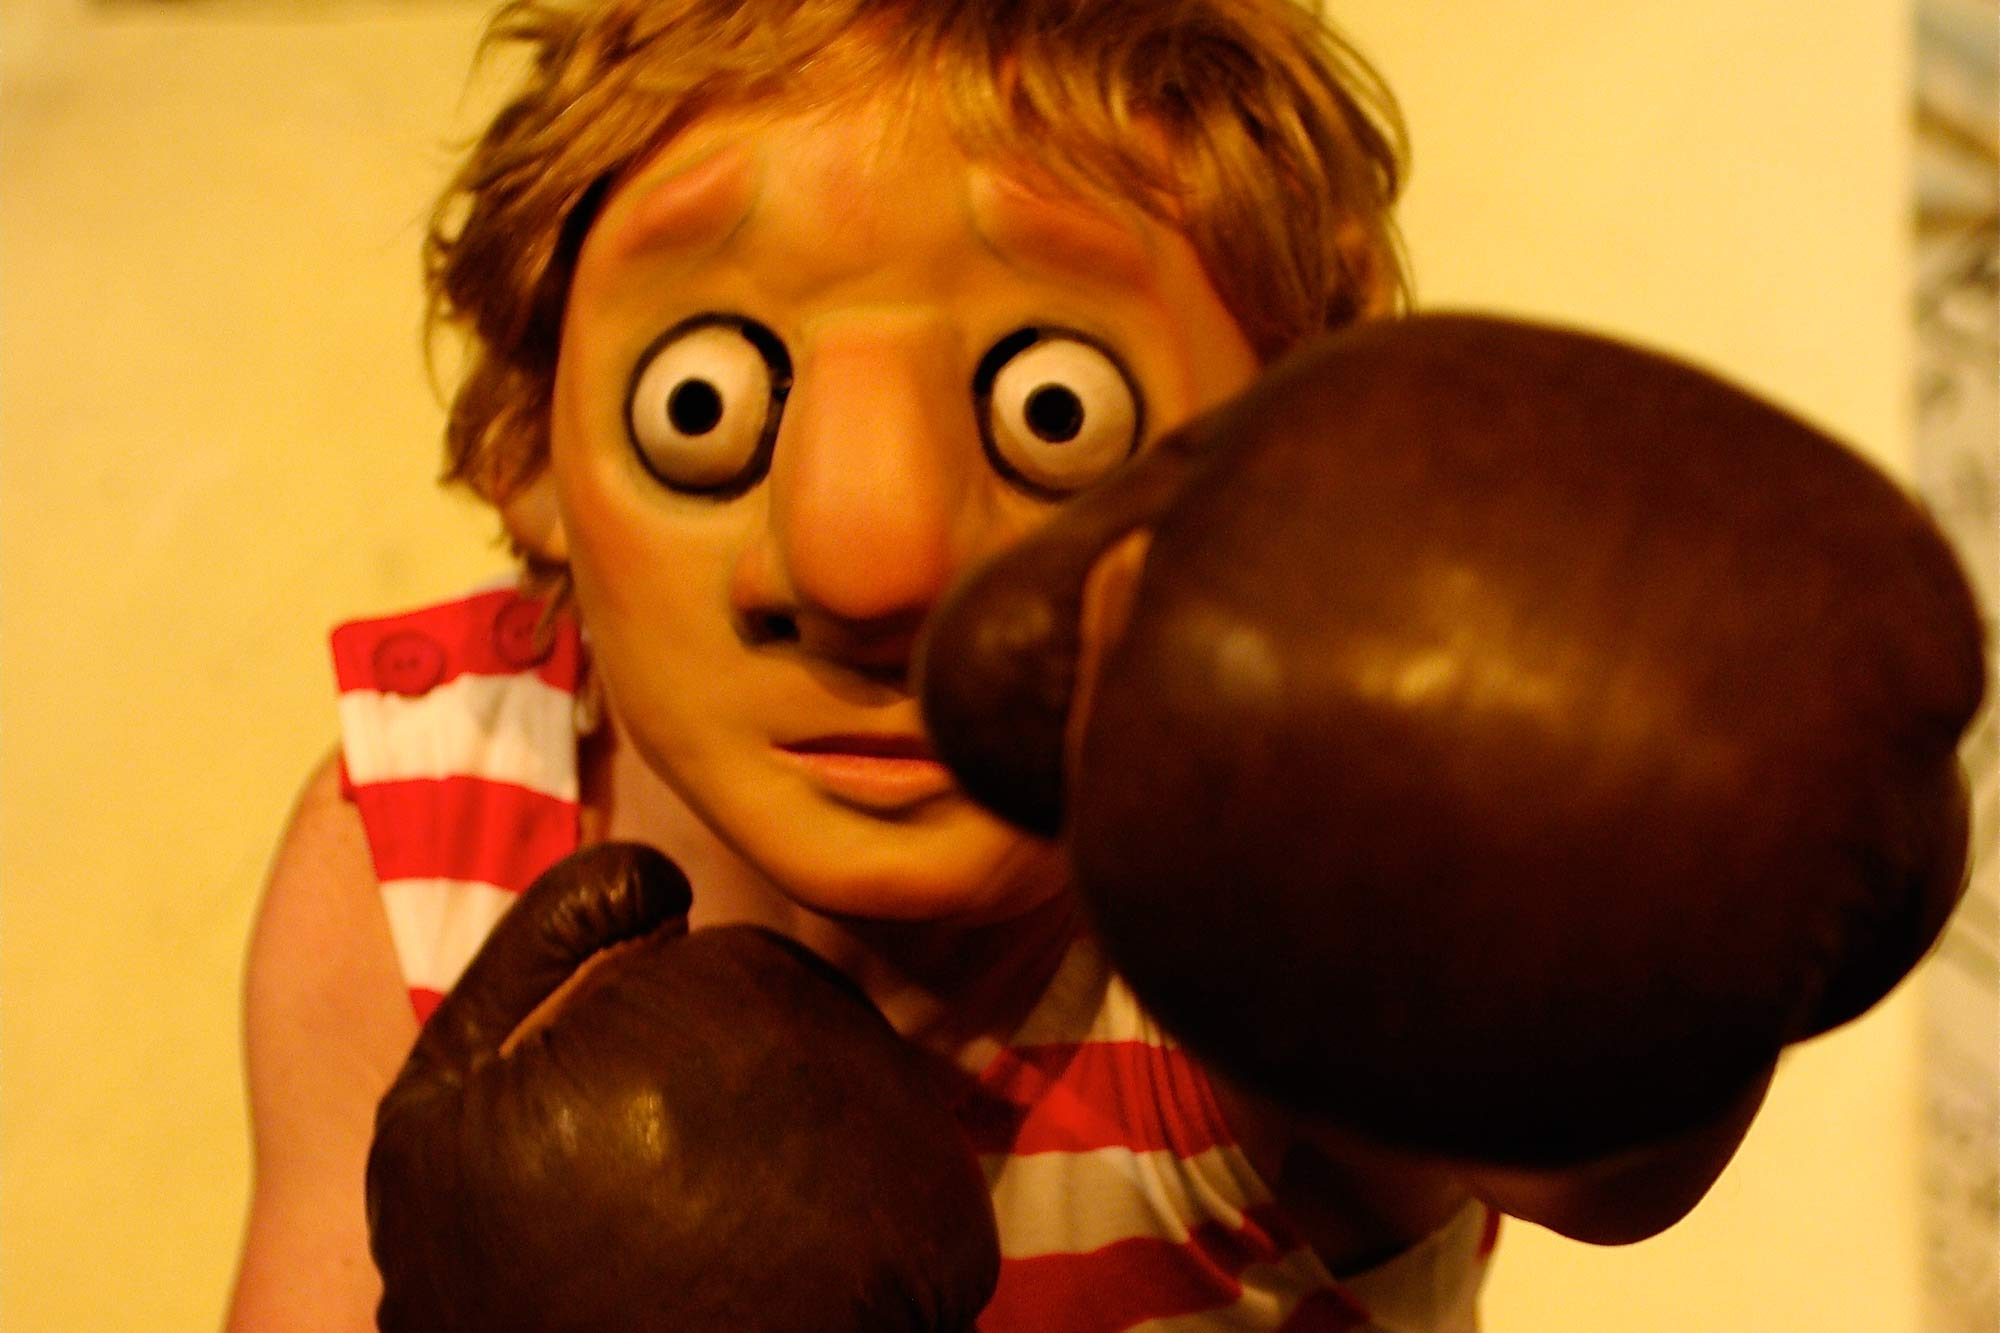 Eddie Sankey learns to box